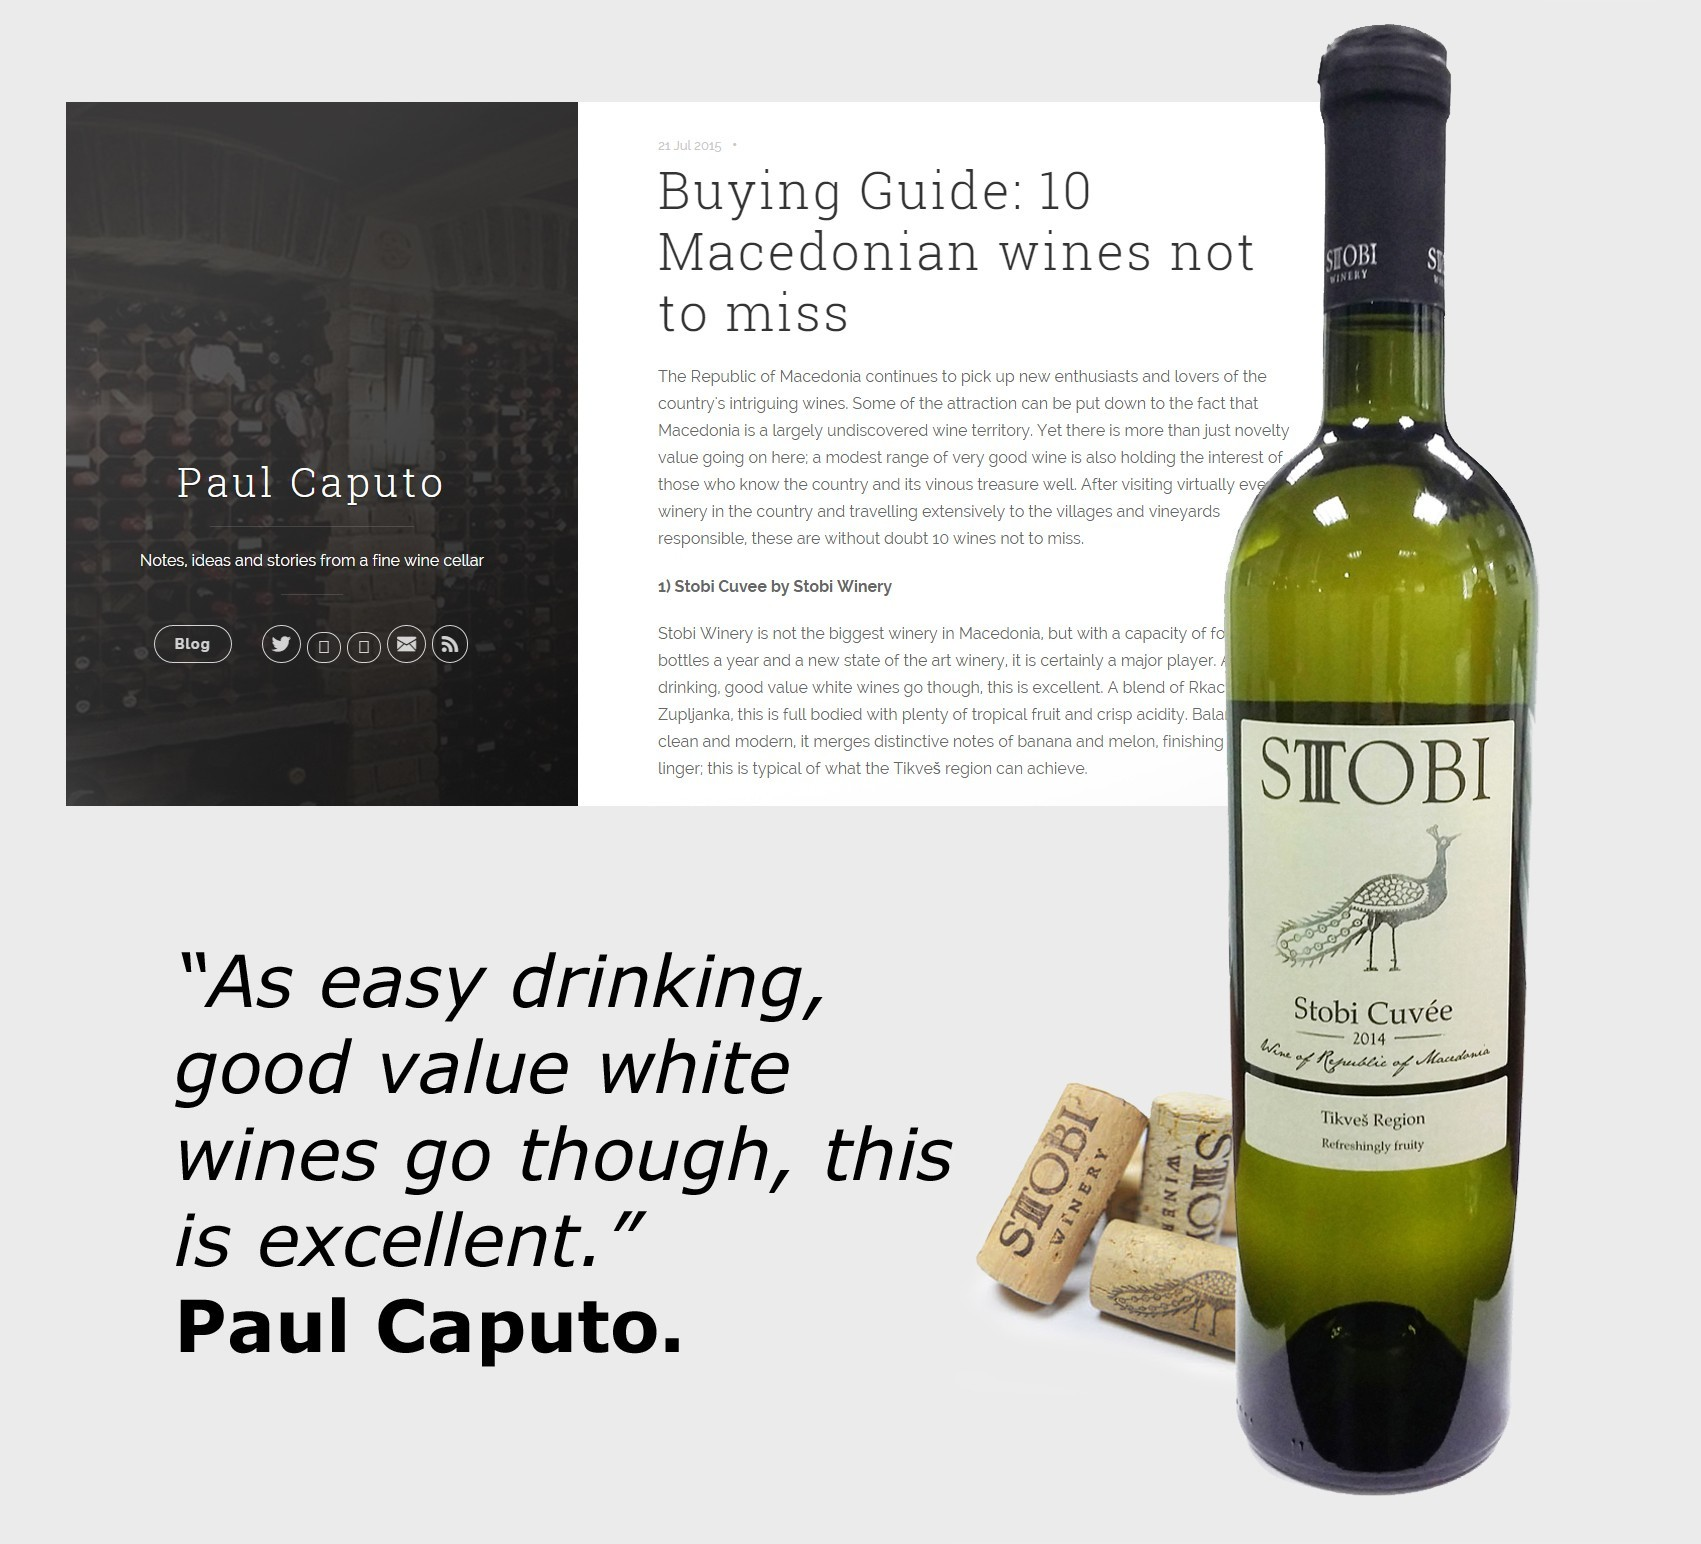 Stobi Cuvée Listed as Top Wine by Paul Caputo